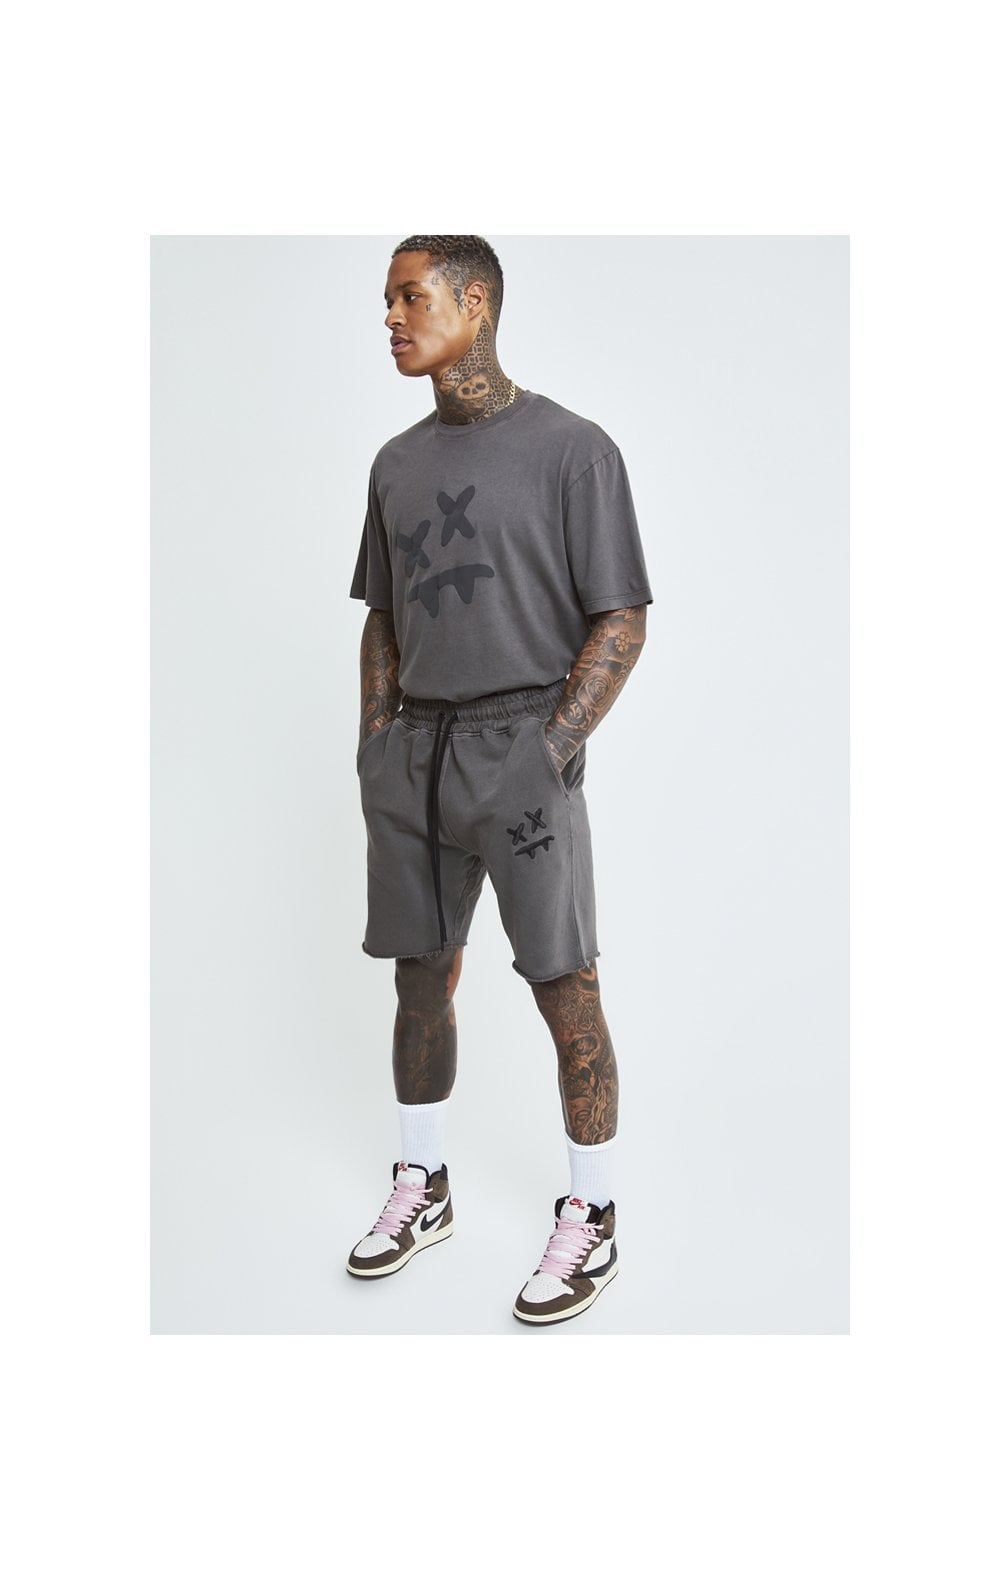 Load image into Gallery viewer, SikSilk X Steve Aoki S/S Oversize Essential Tee – Washed Grey (2)